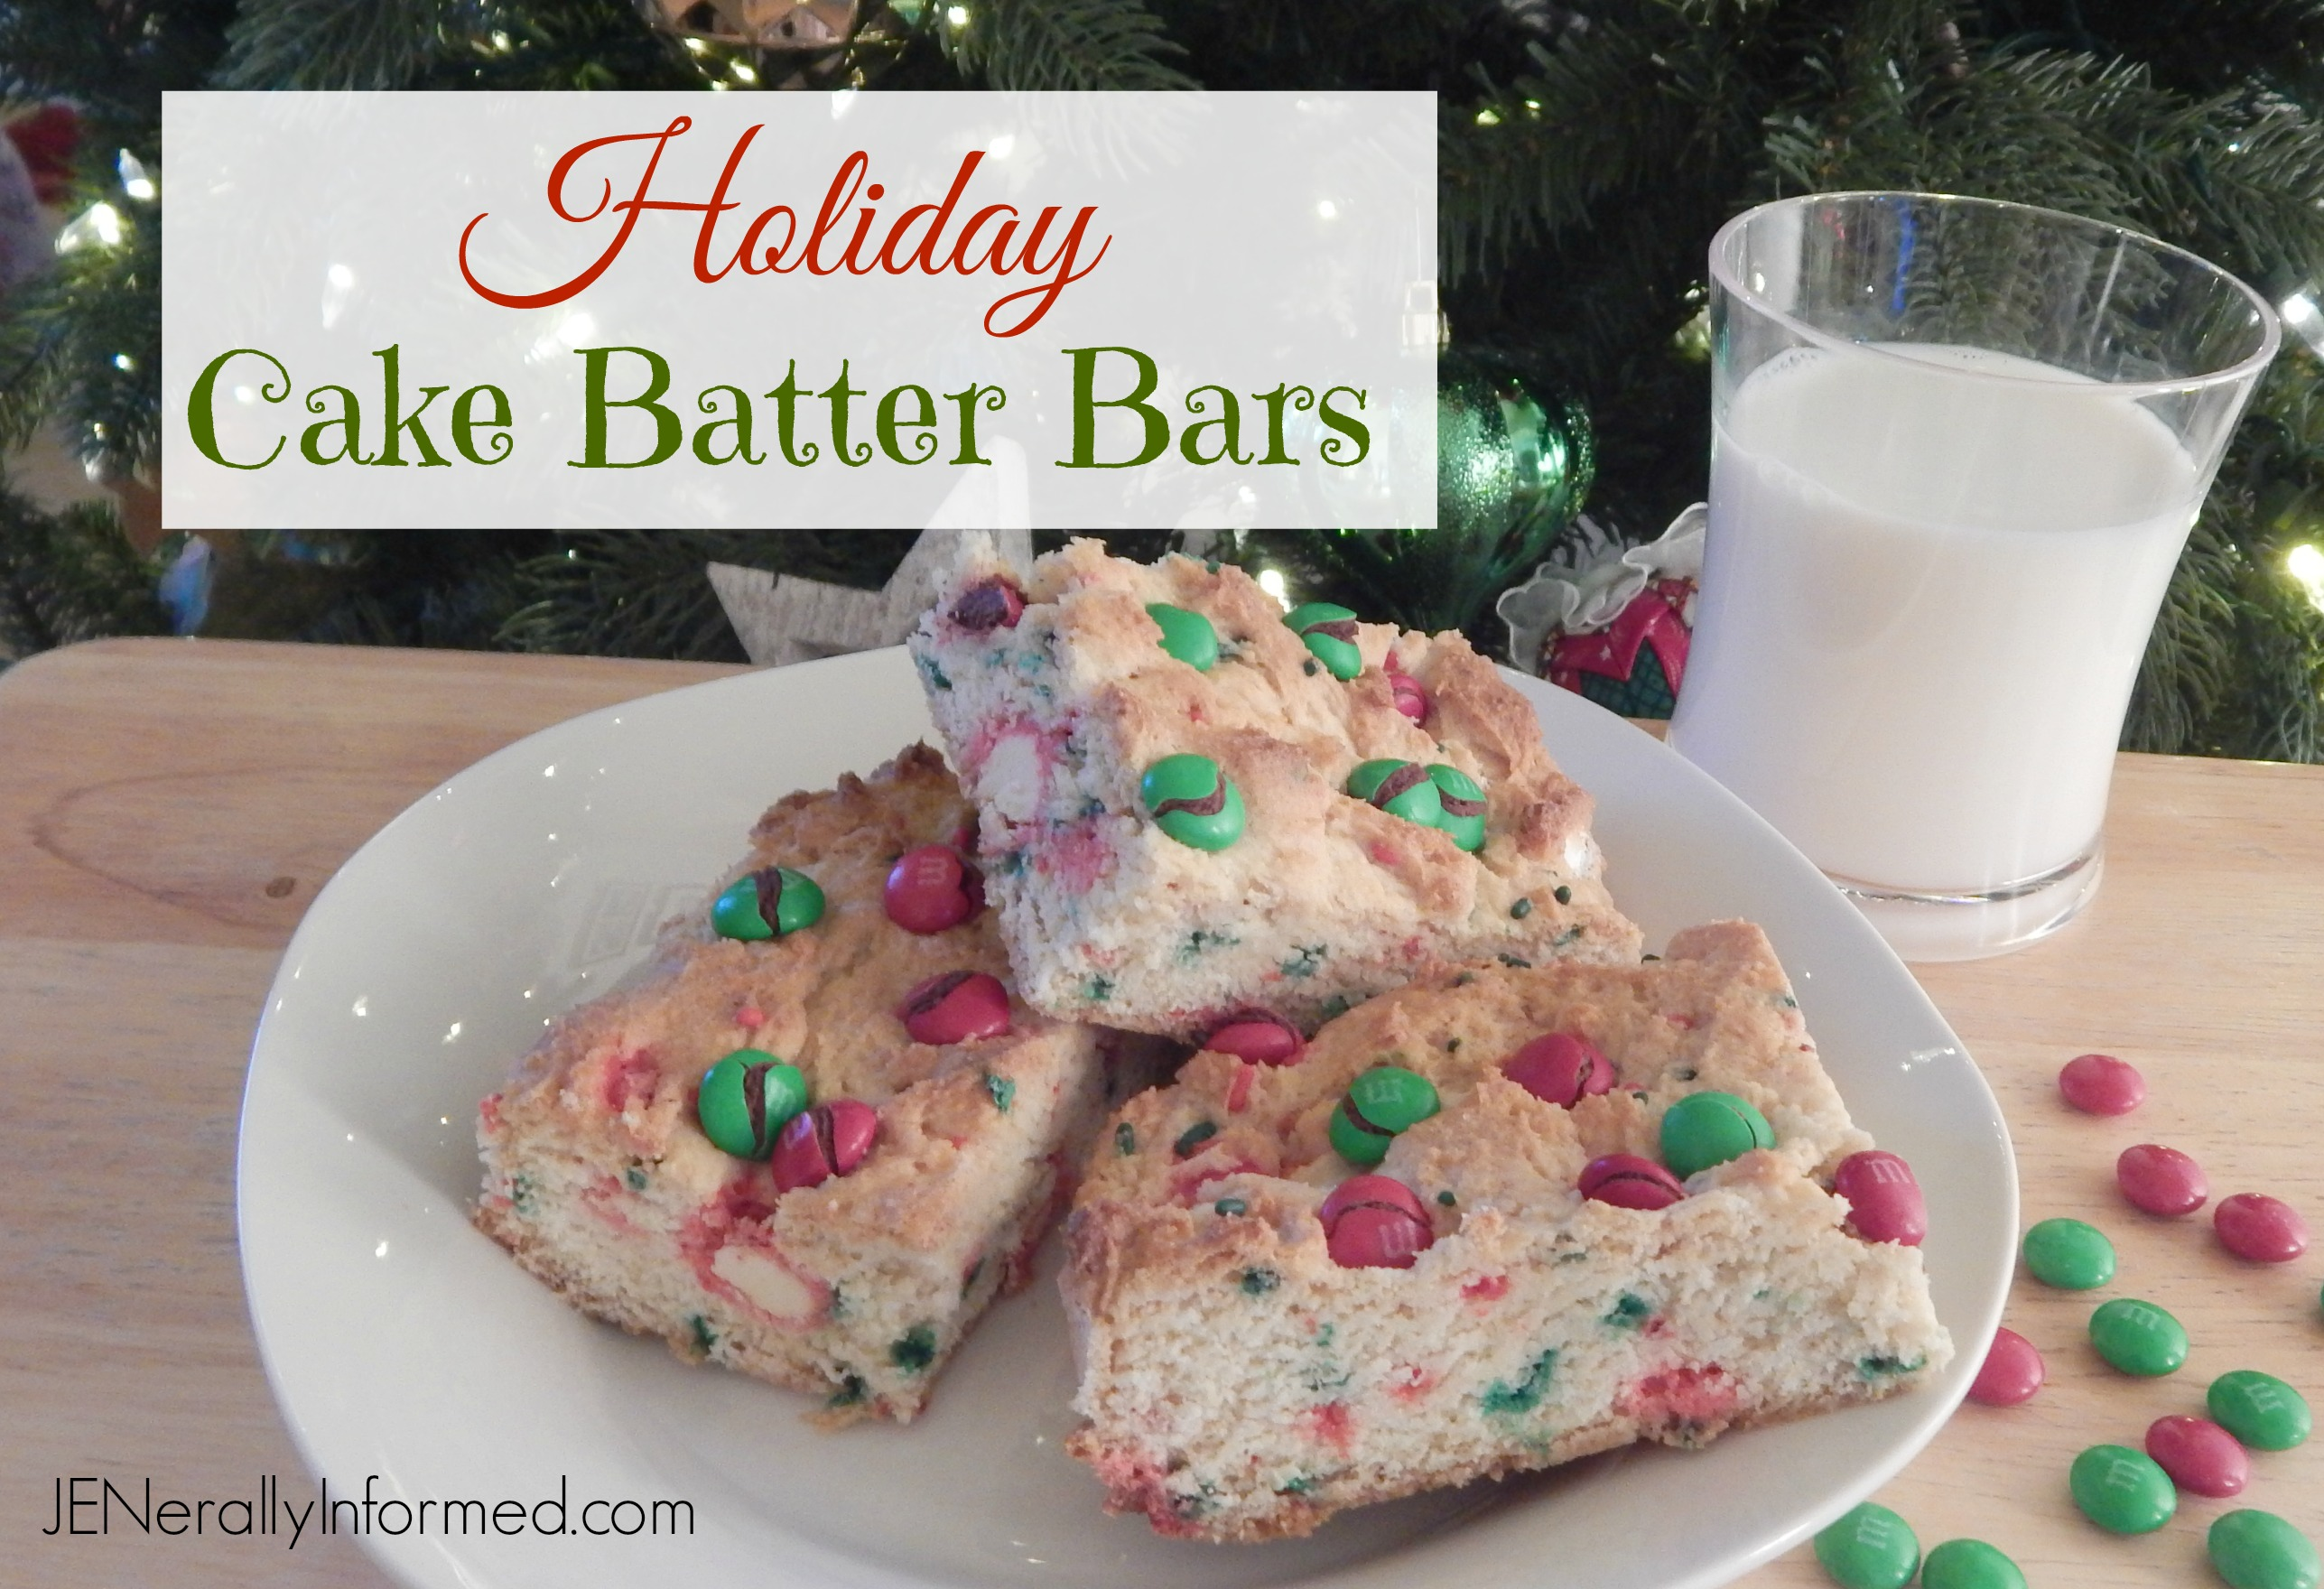 Holiday Cake Batter Bars